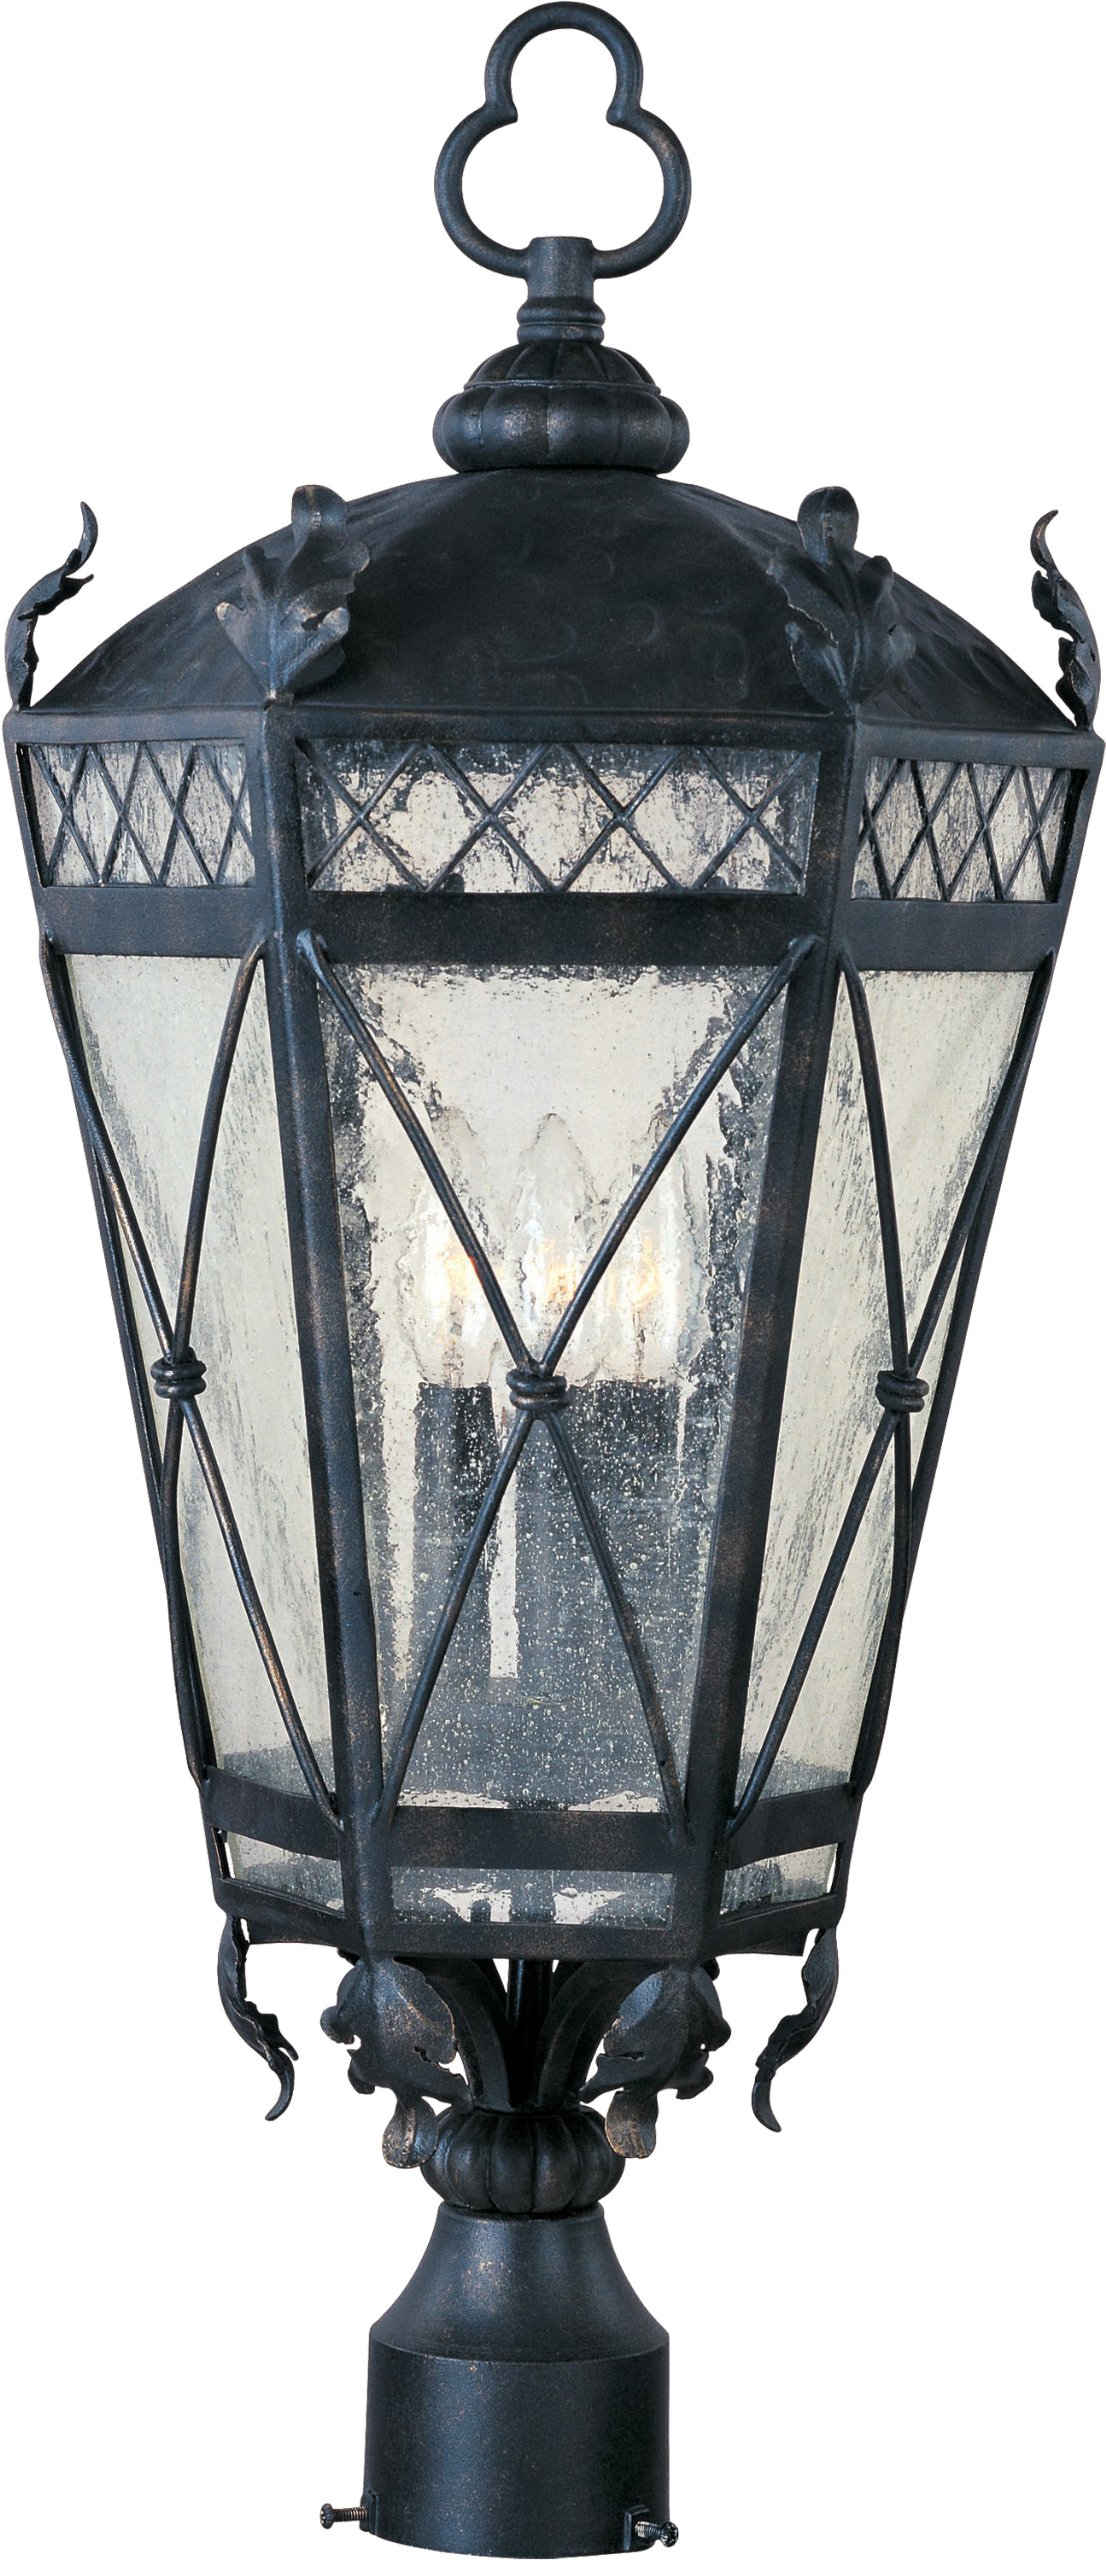 Maxim 30451CDAT Canterbury 3-Light Outdoor Pole/Post Lantern, Artesian Bronze Finish, Seedy Glass, CA Incandescent Incandescent Bulb , 40W Max., Dry Safety Rating, Standard Dimmable, Fabric Shade Material, 5760 Rated Lumens